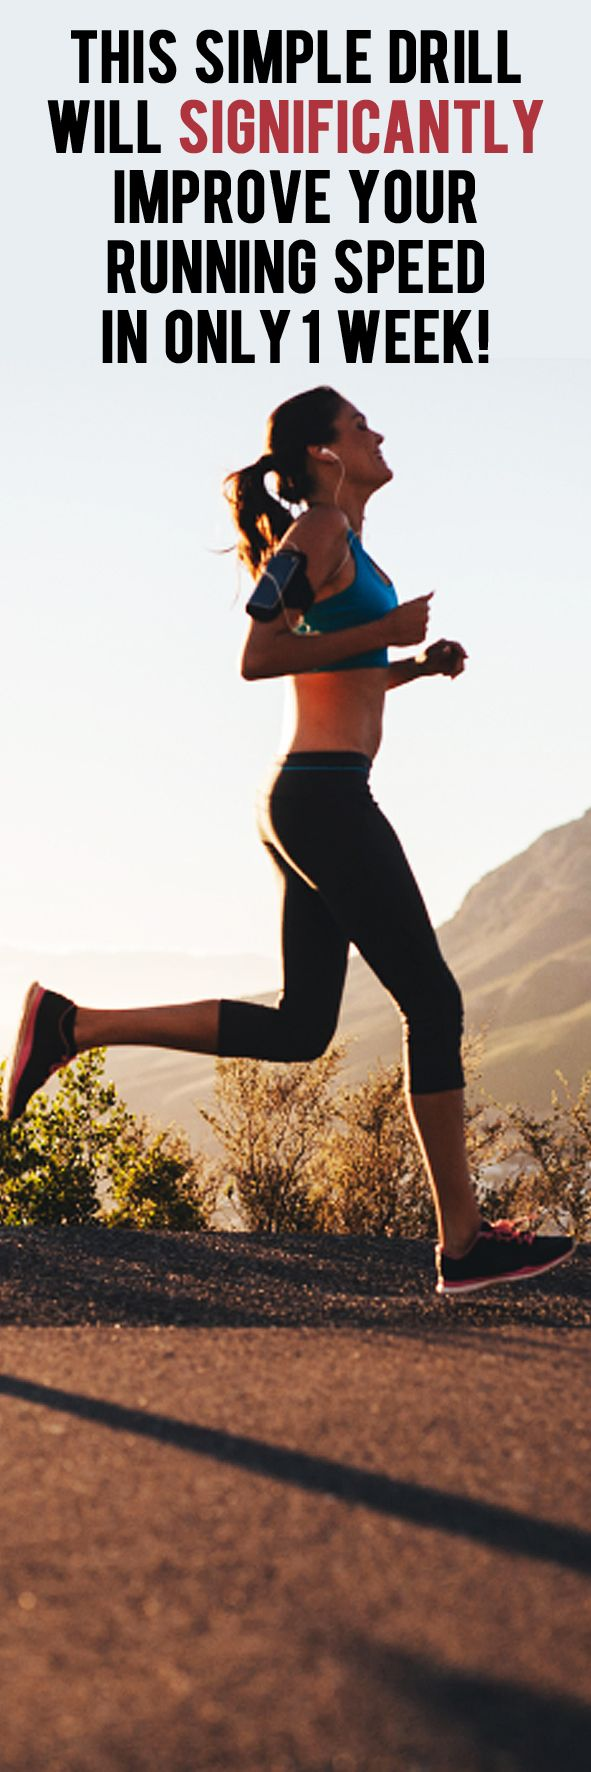 This simple drill will significantly improve your running speed in only one week! #runningtips #runningadvice #runfaster #improverunning #running